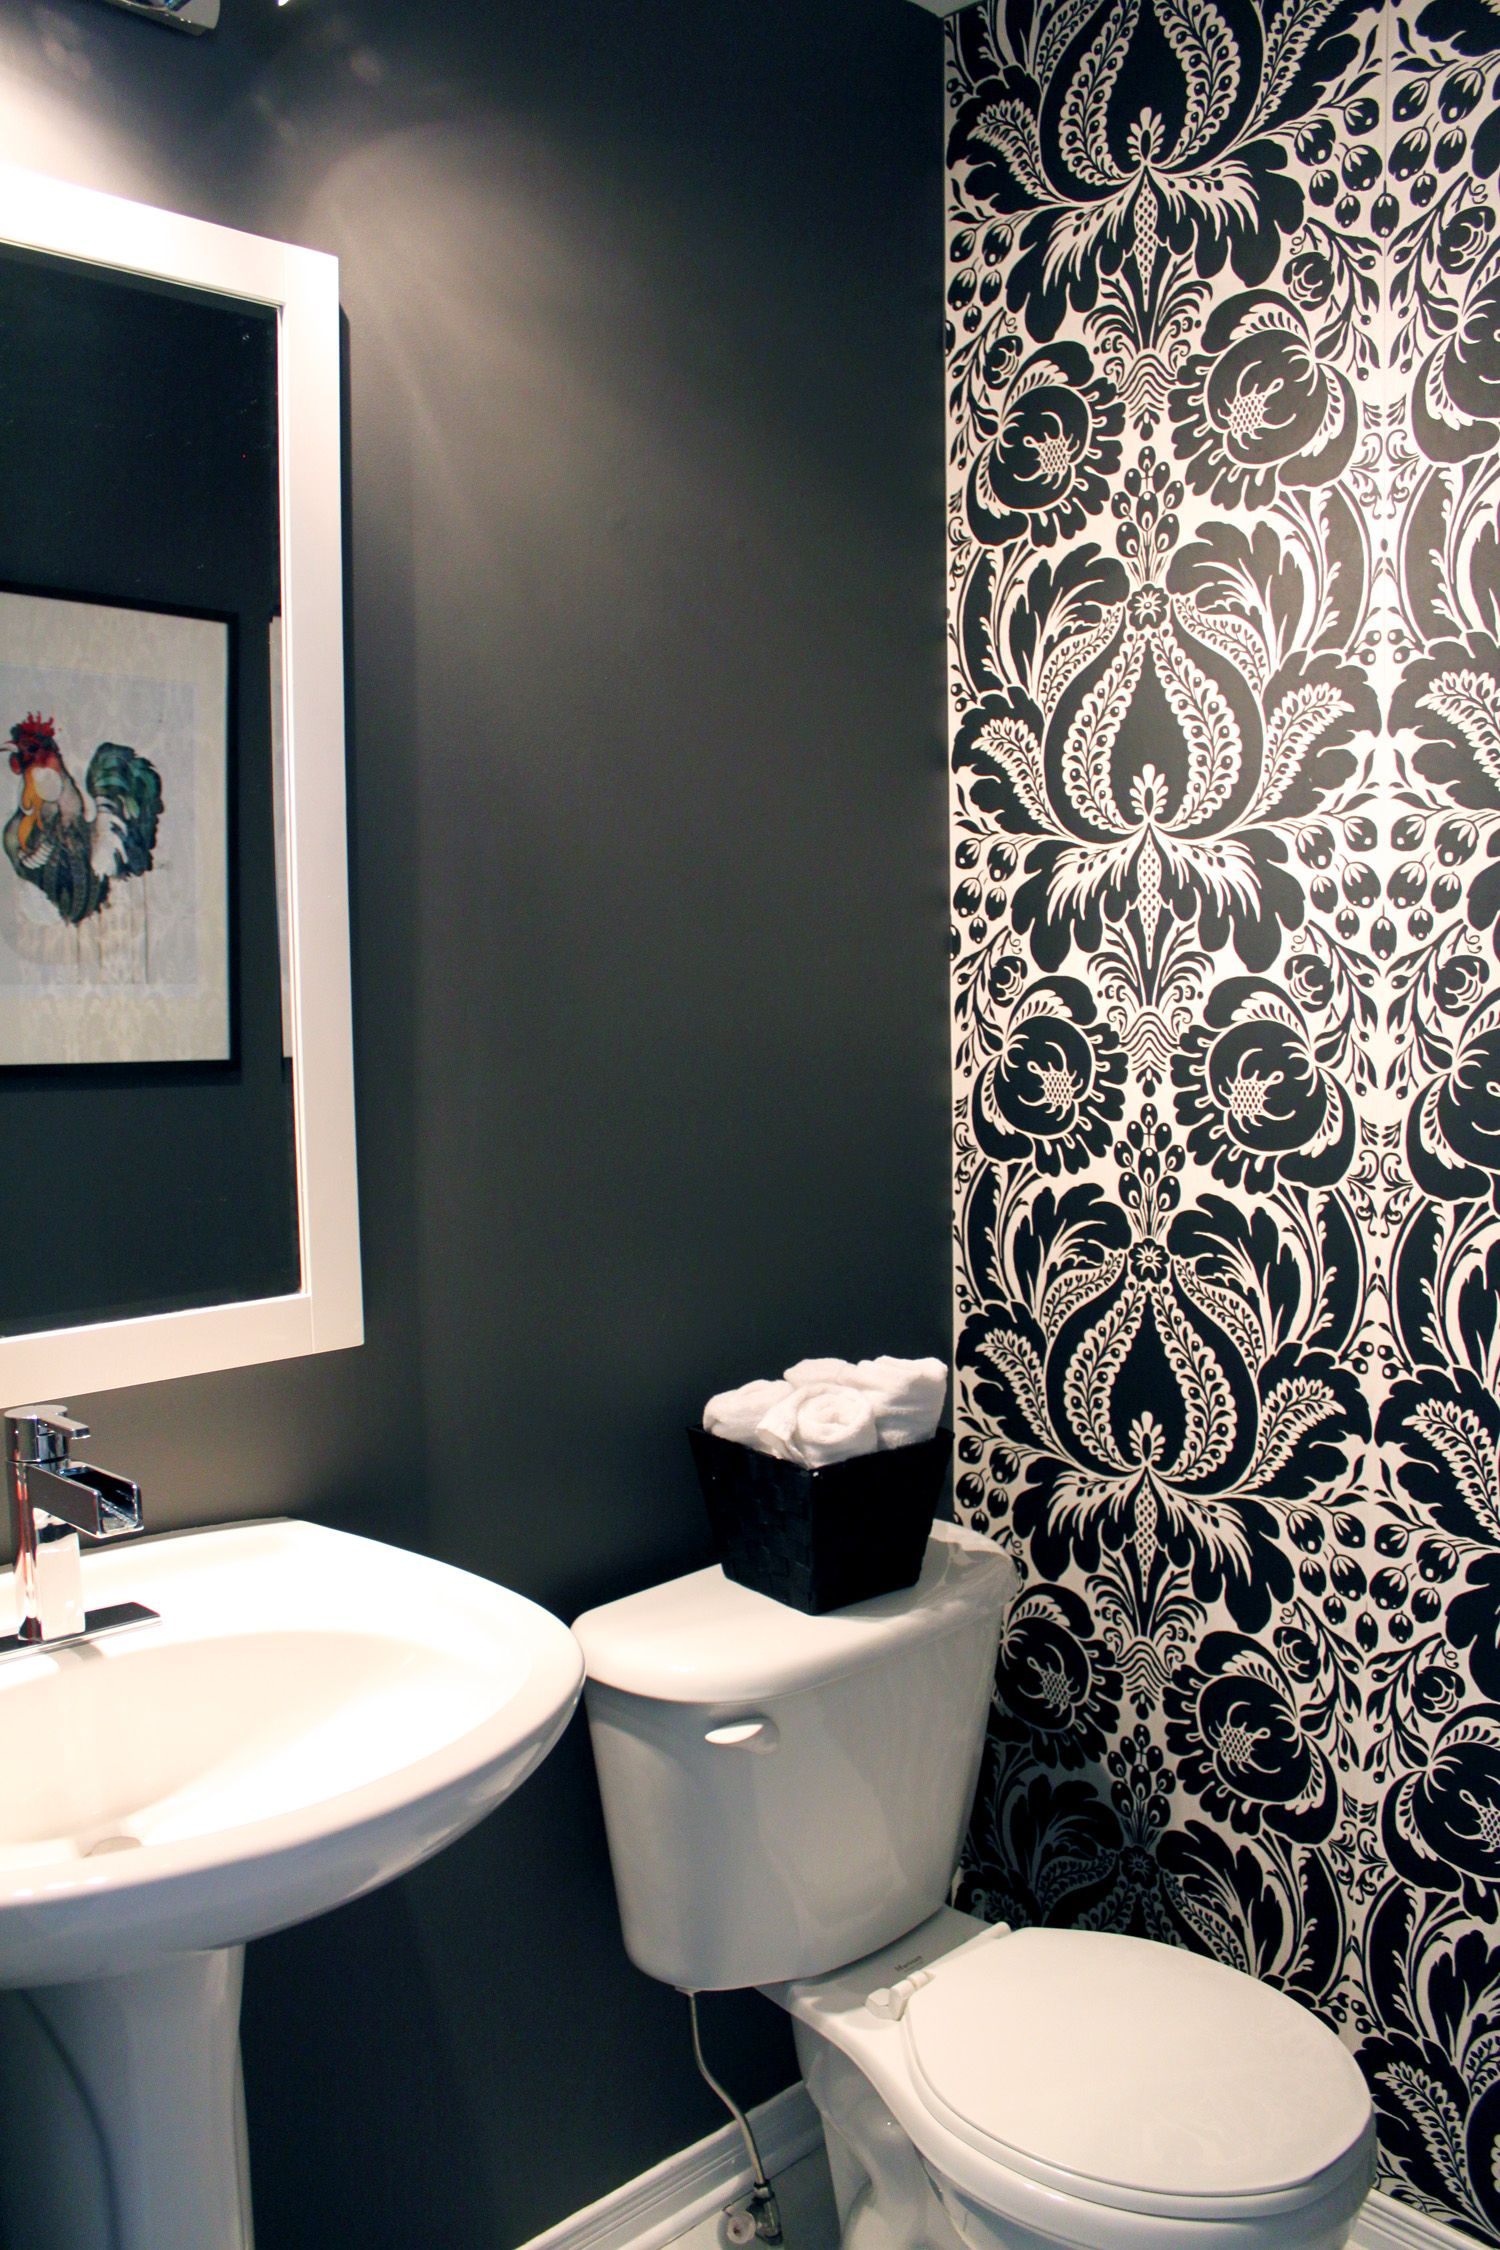 I Like The Idea Of Doing  Wall In A Powder Room With A Really Bold Wallpaper Print